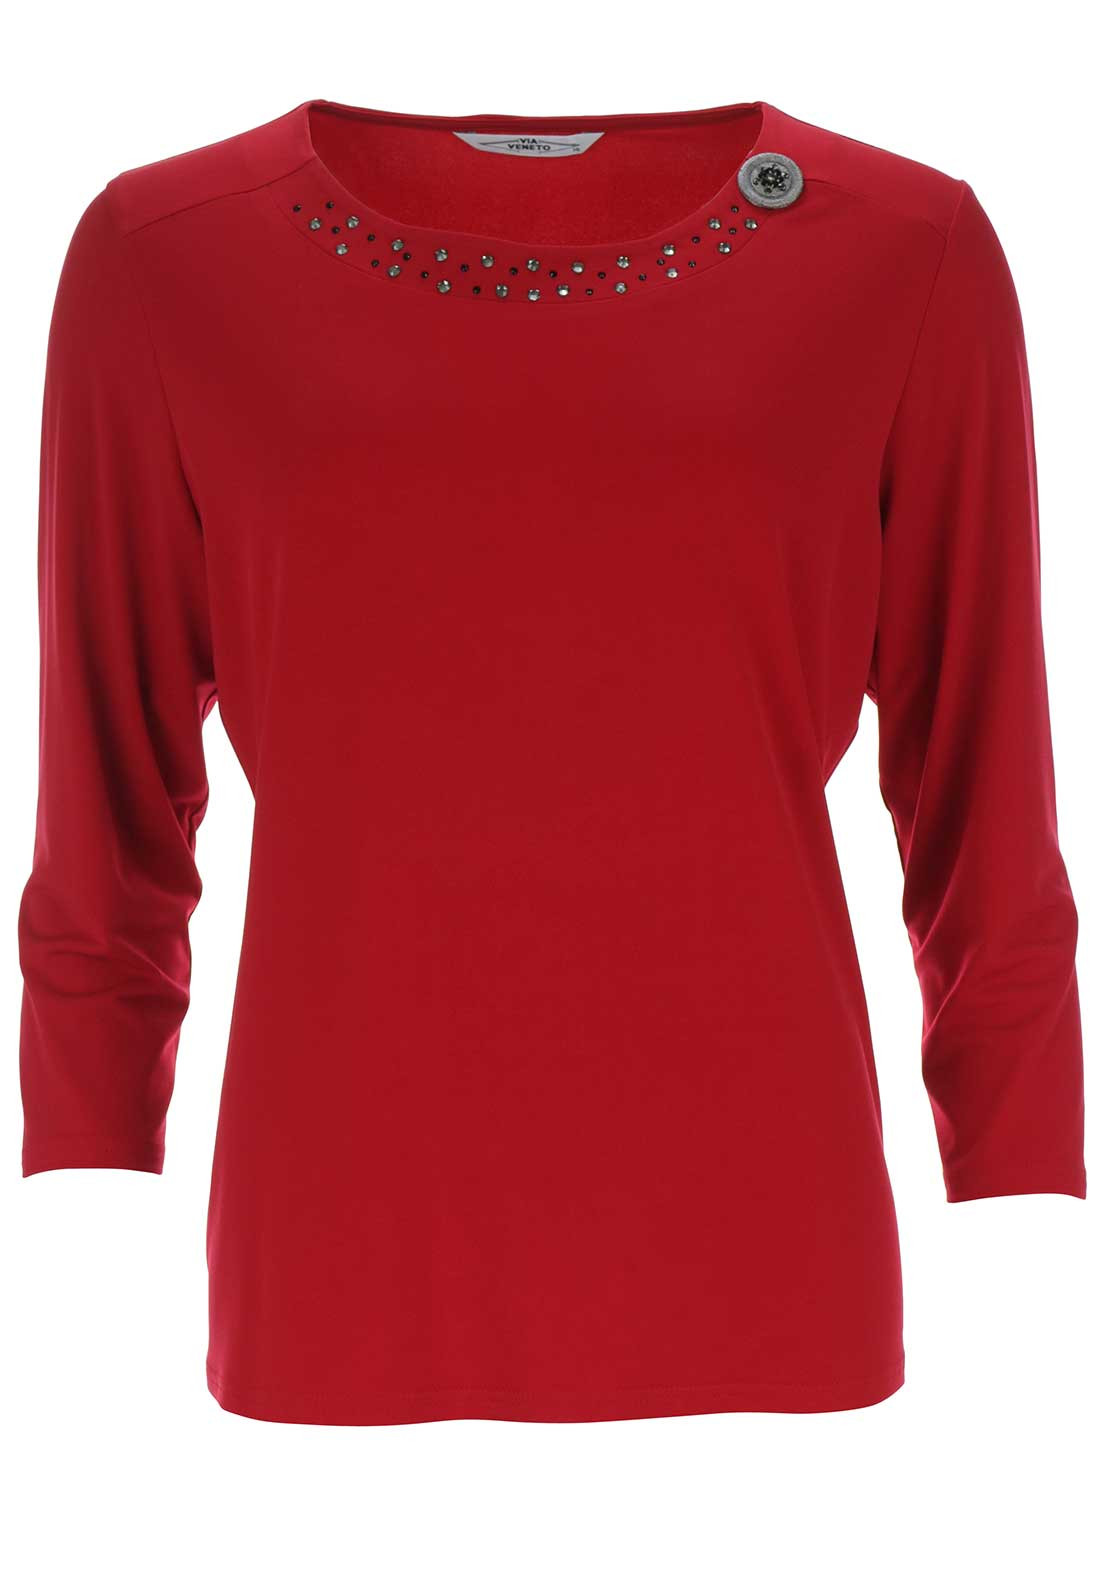 Via Veneto Diamante Trim Top, Red